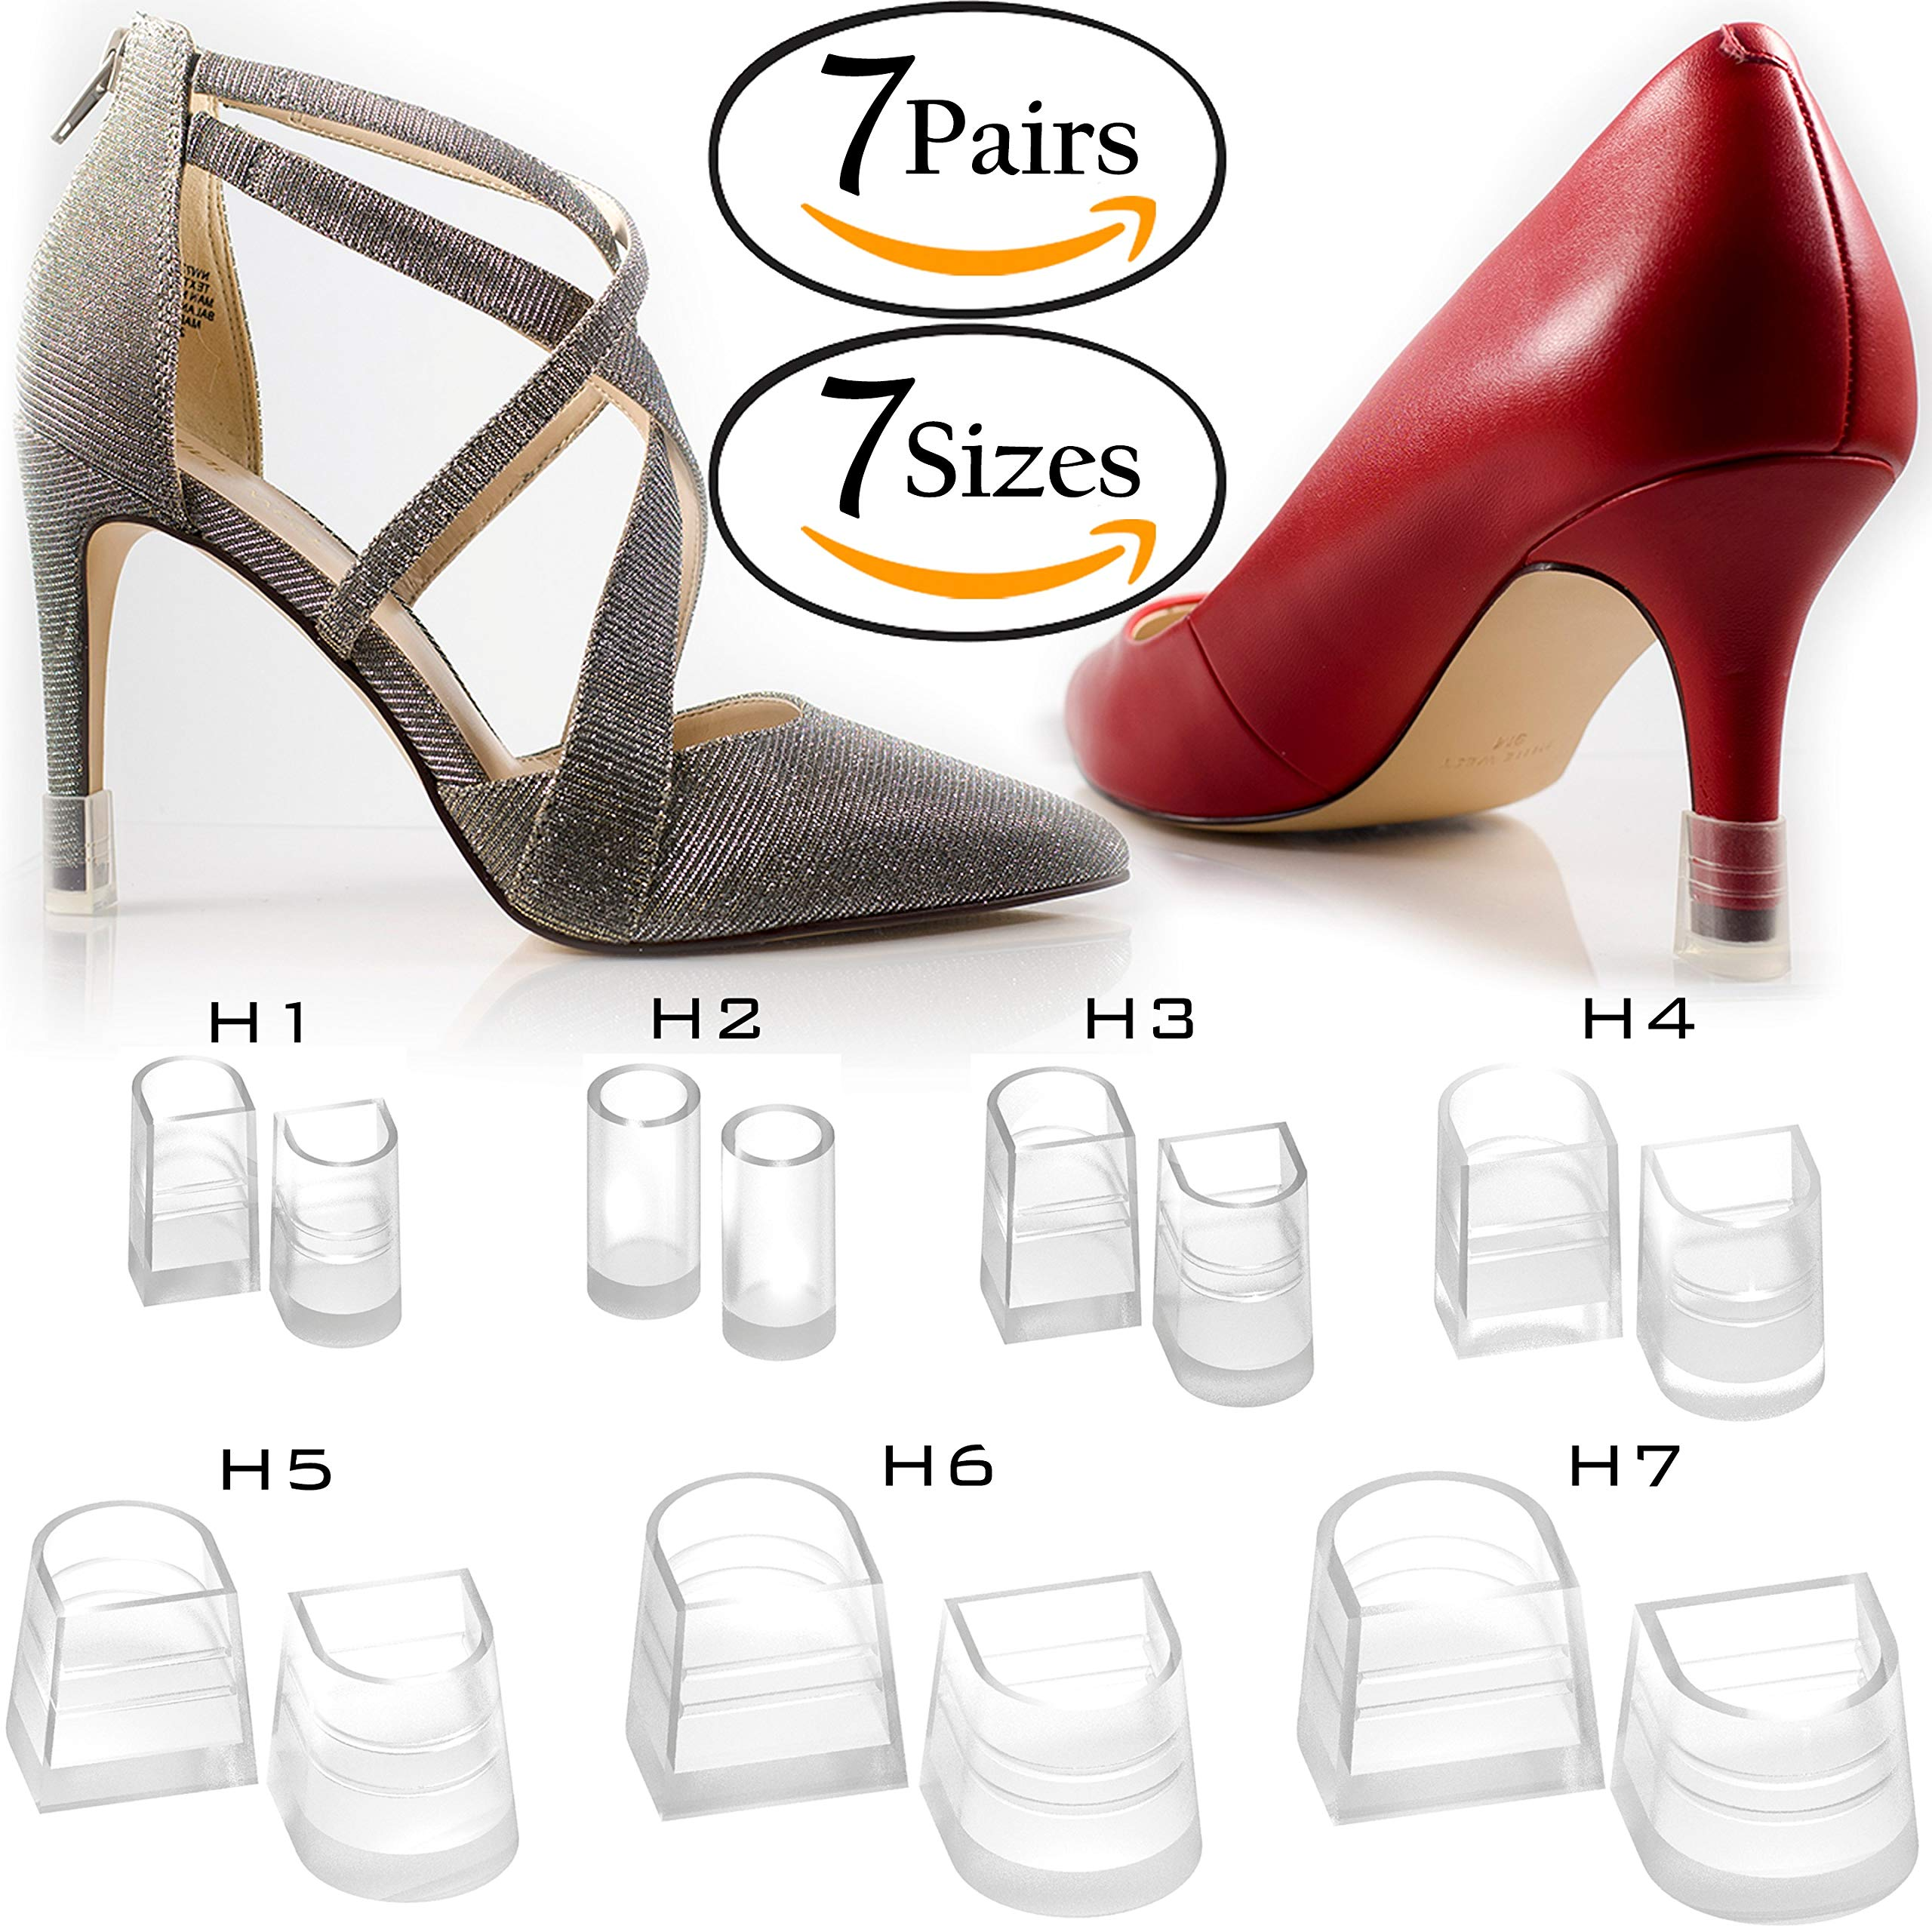 7 Sizes 7 Pair Set Clear-Glass High Heel Protectors & Heel Repair Replacement Anti-Slip & for Grass Caps [Assortment Pack, Fits High Heel Shoes & Stiletto Tips] - 7 Hunks Set by Heel Hunks